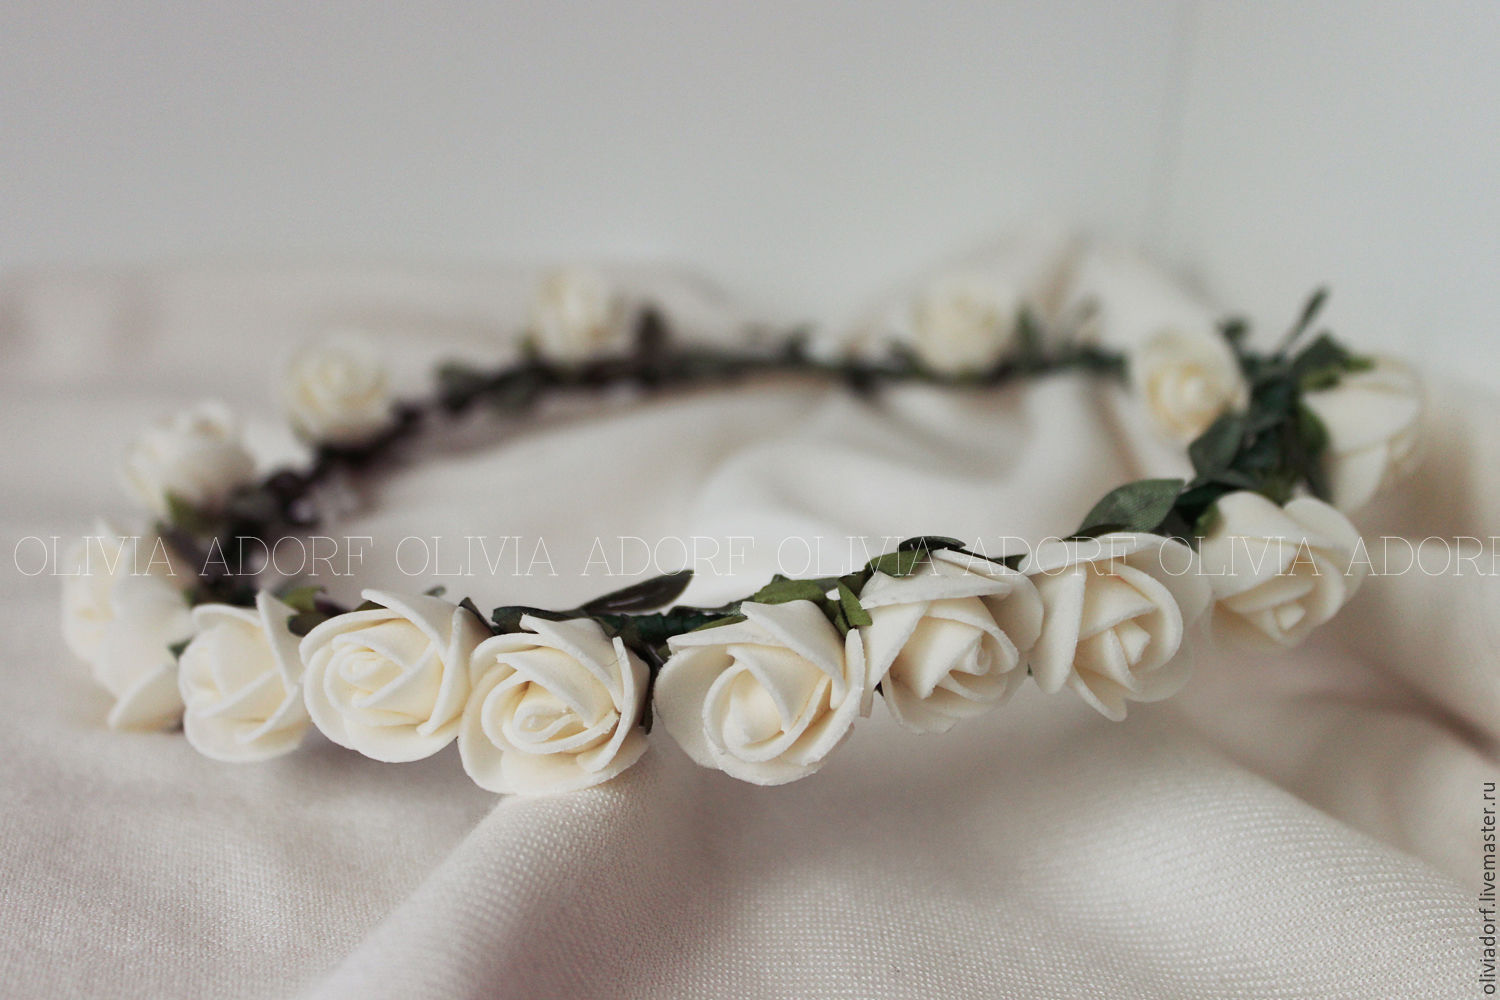 Flower Crown With White Roses Bianca S23 Shop Online On